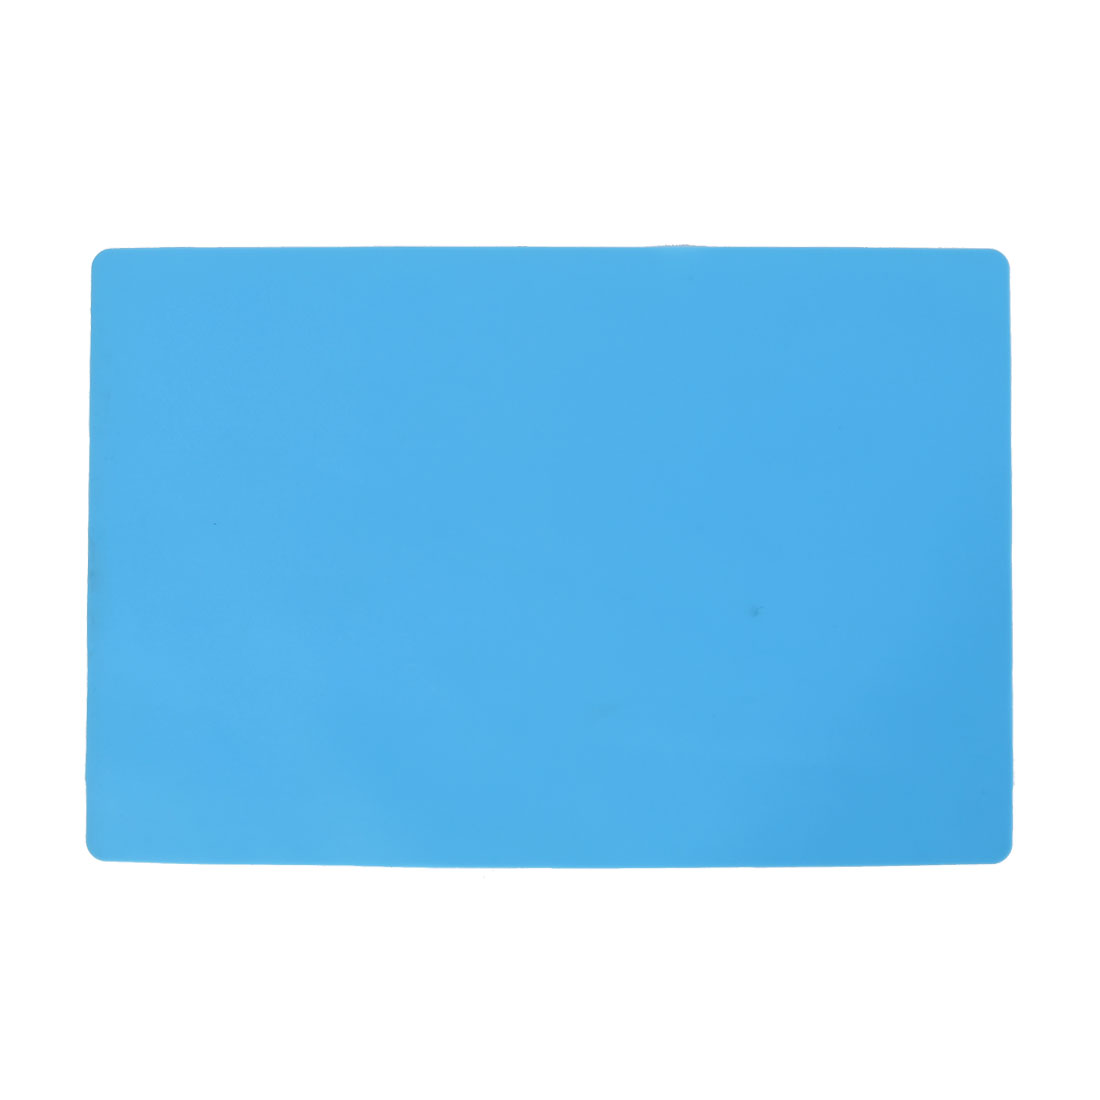 Kitchen Bakery Rubber Regatangle Shape Heat Insulation Pad Placemat Mat Blue